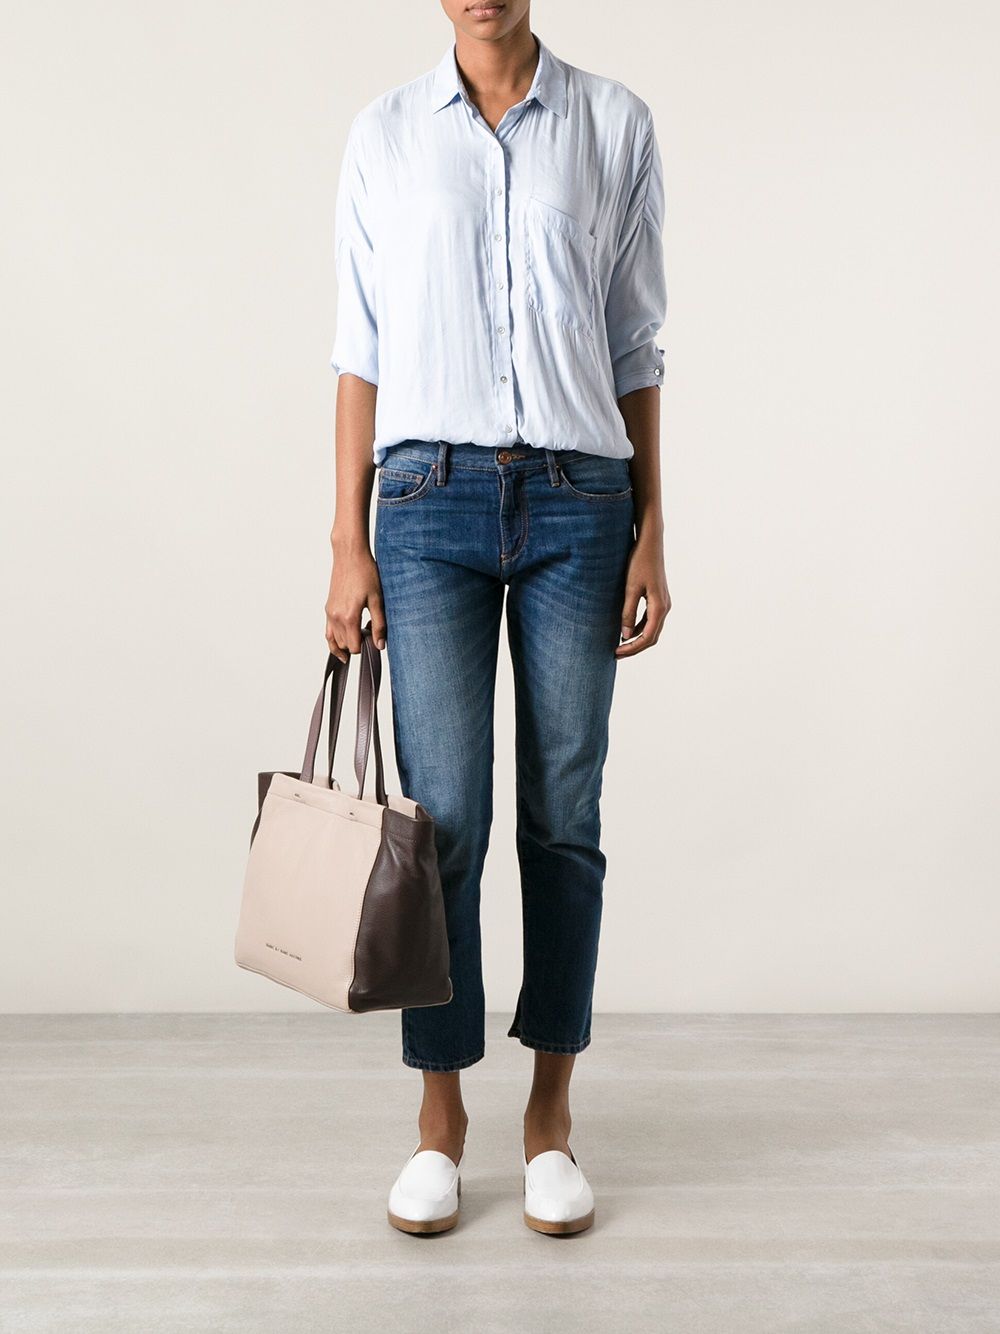 Marc By Marc Jacobs Whats The T Tote in Natural